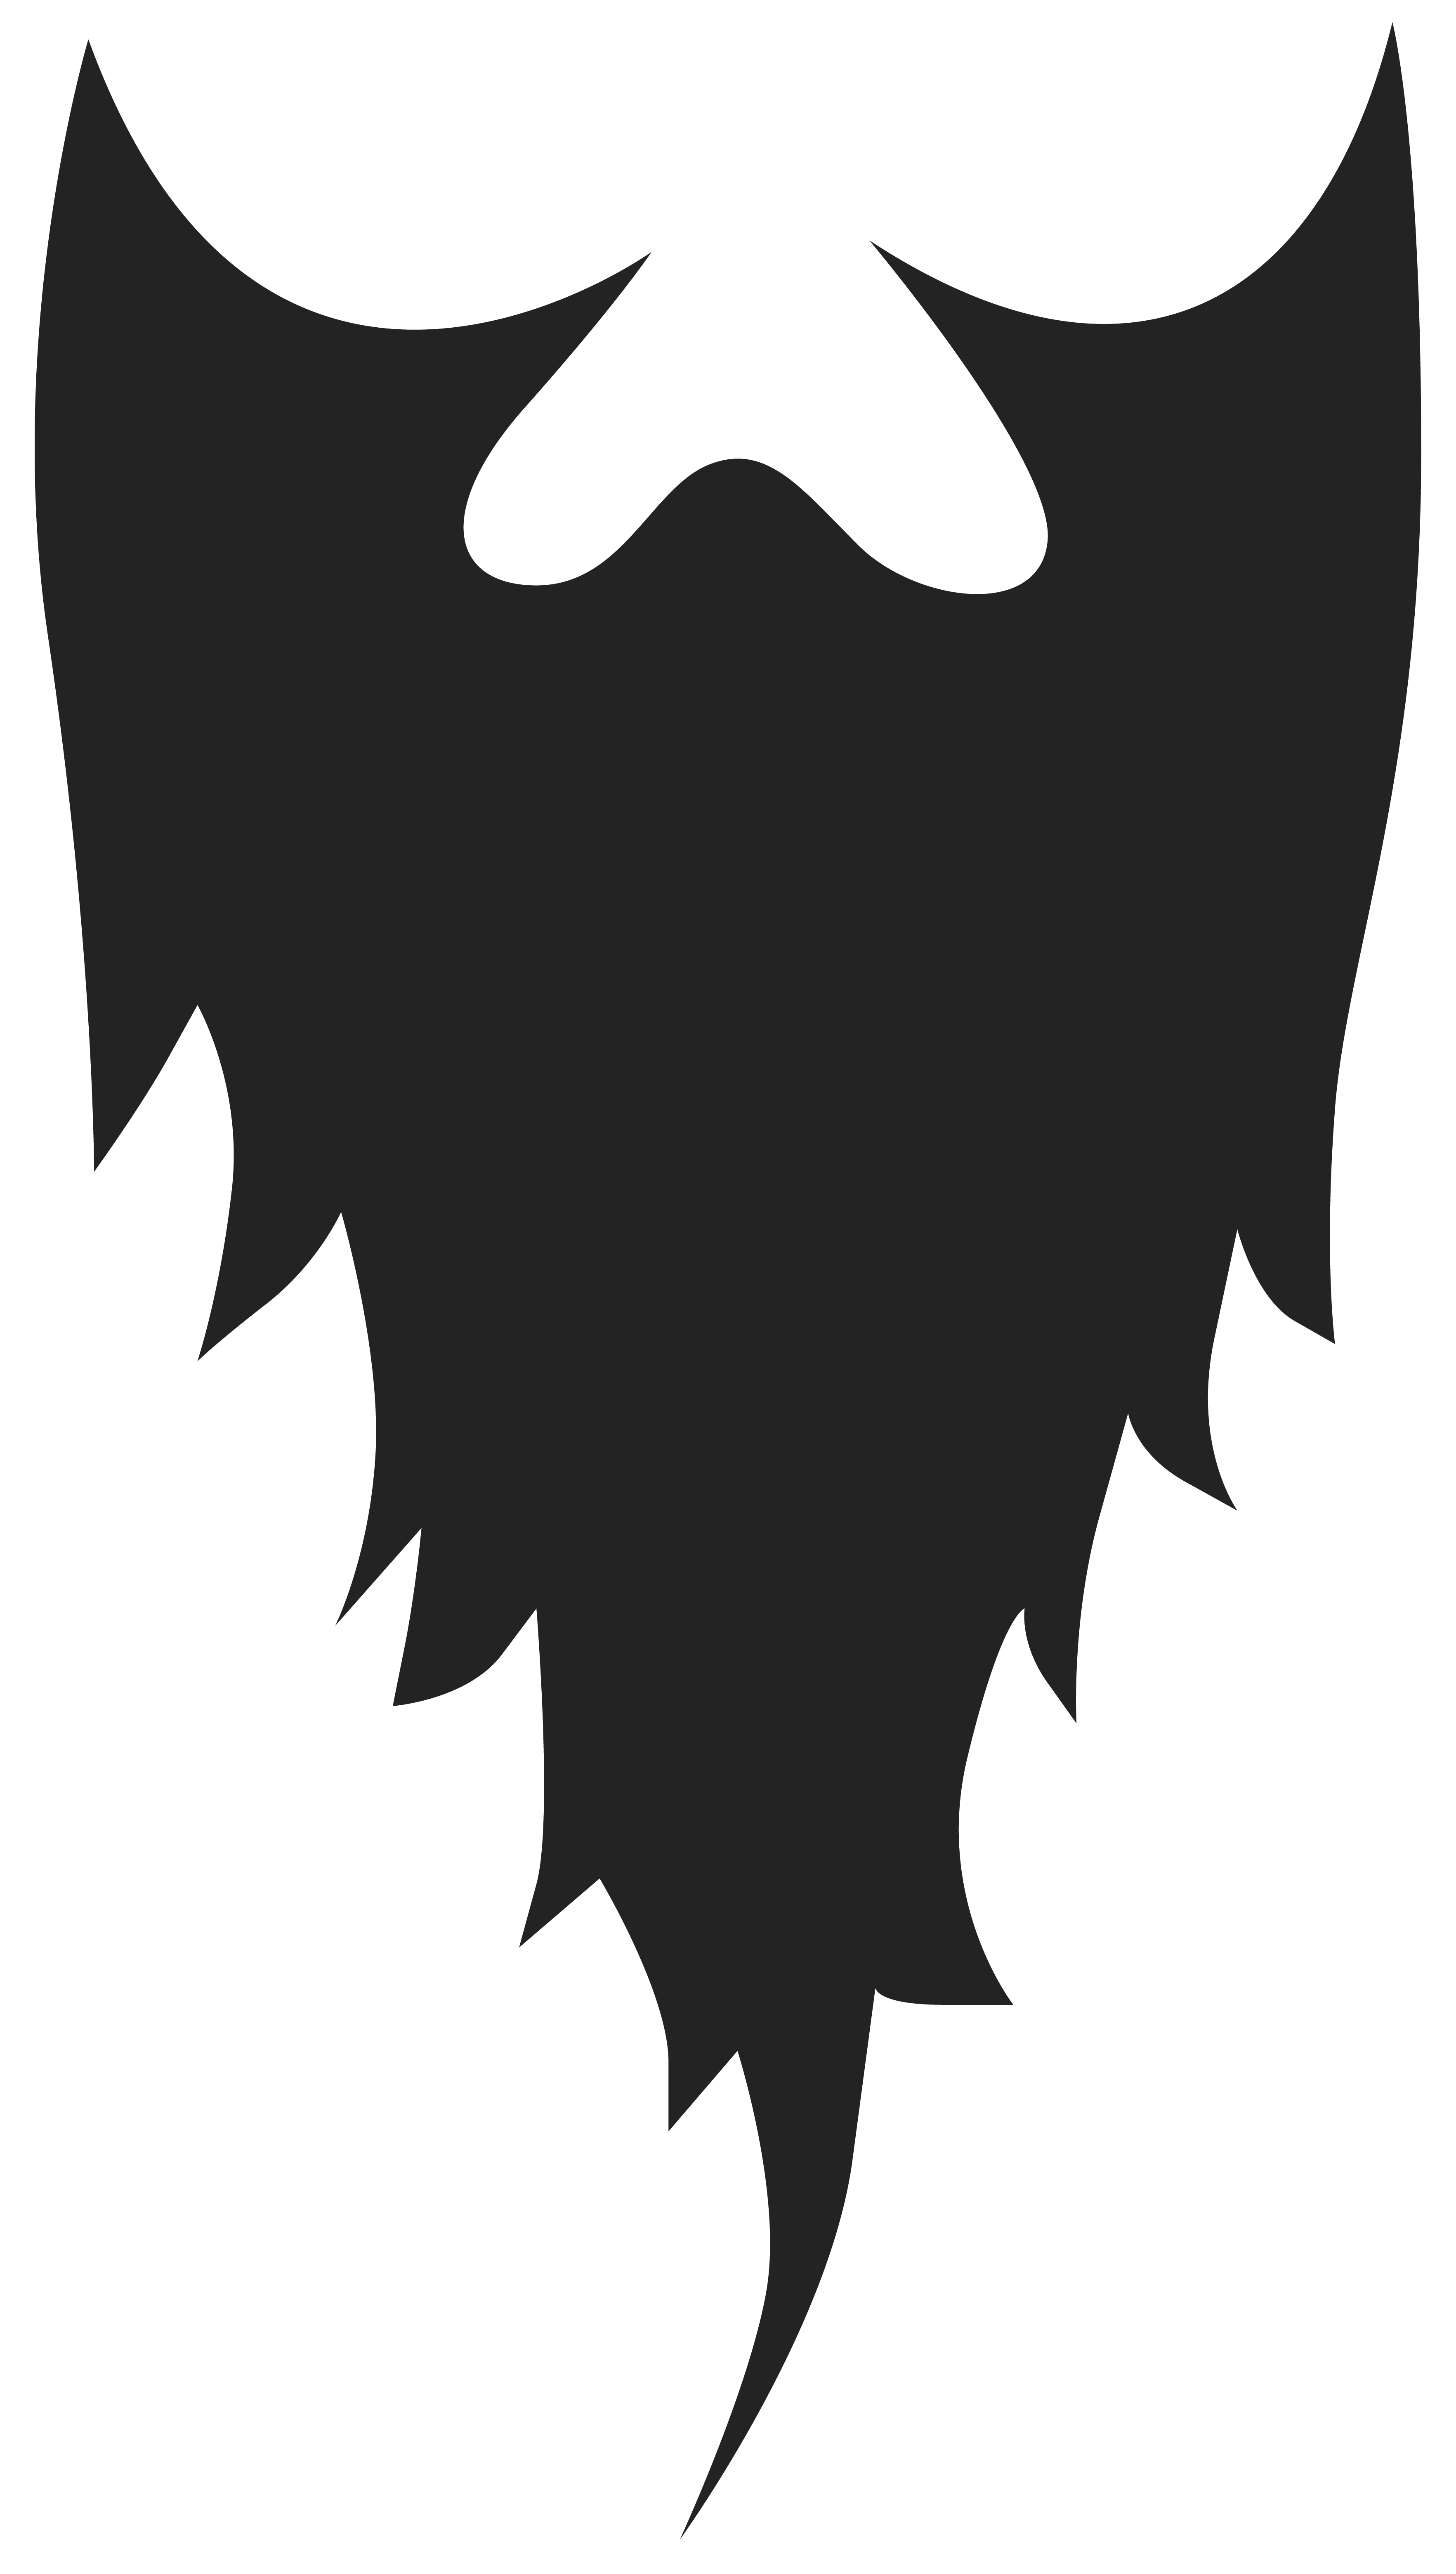 Movember Beard PNG Clipart Image.